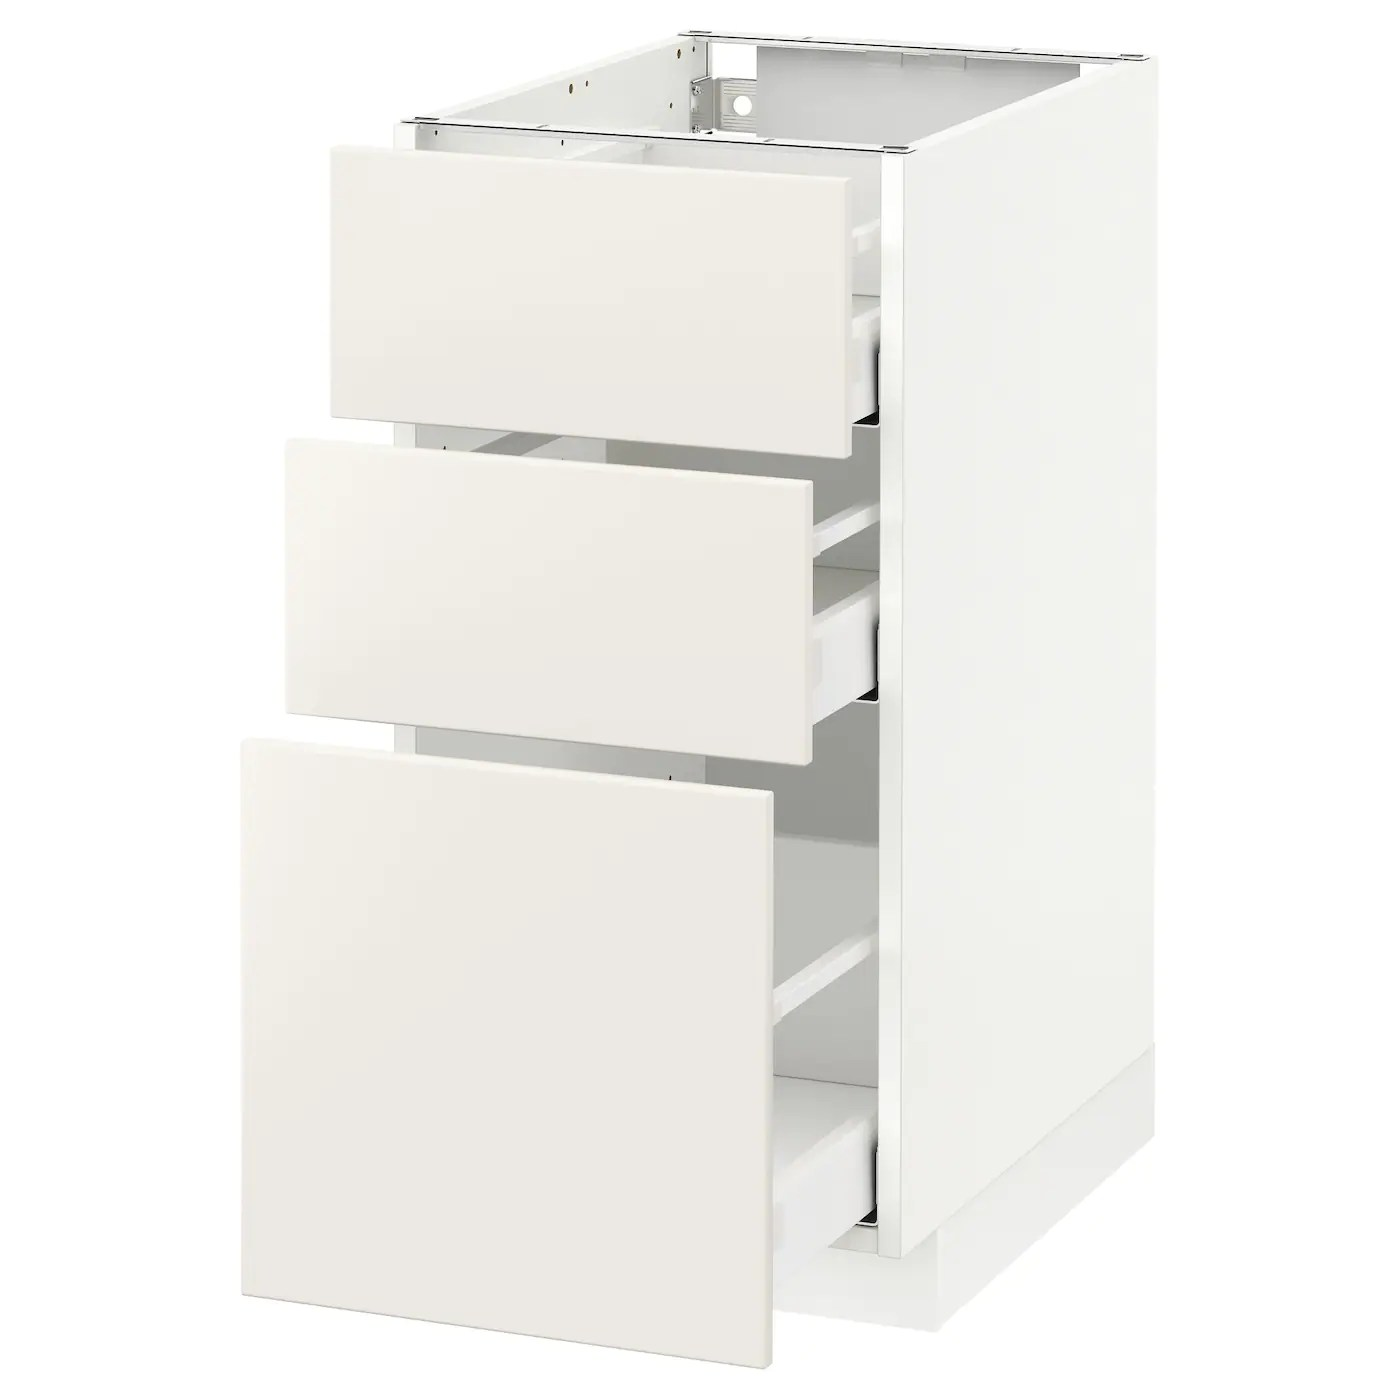 Ikea Metod Pdf Metod Maximera Base Cabinet With 3 Drawers White Veddinge White